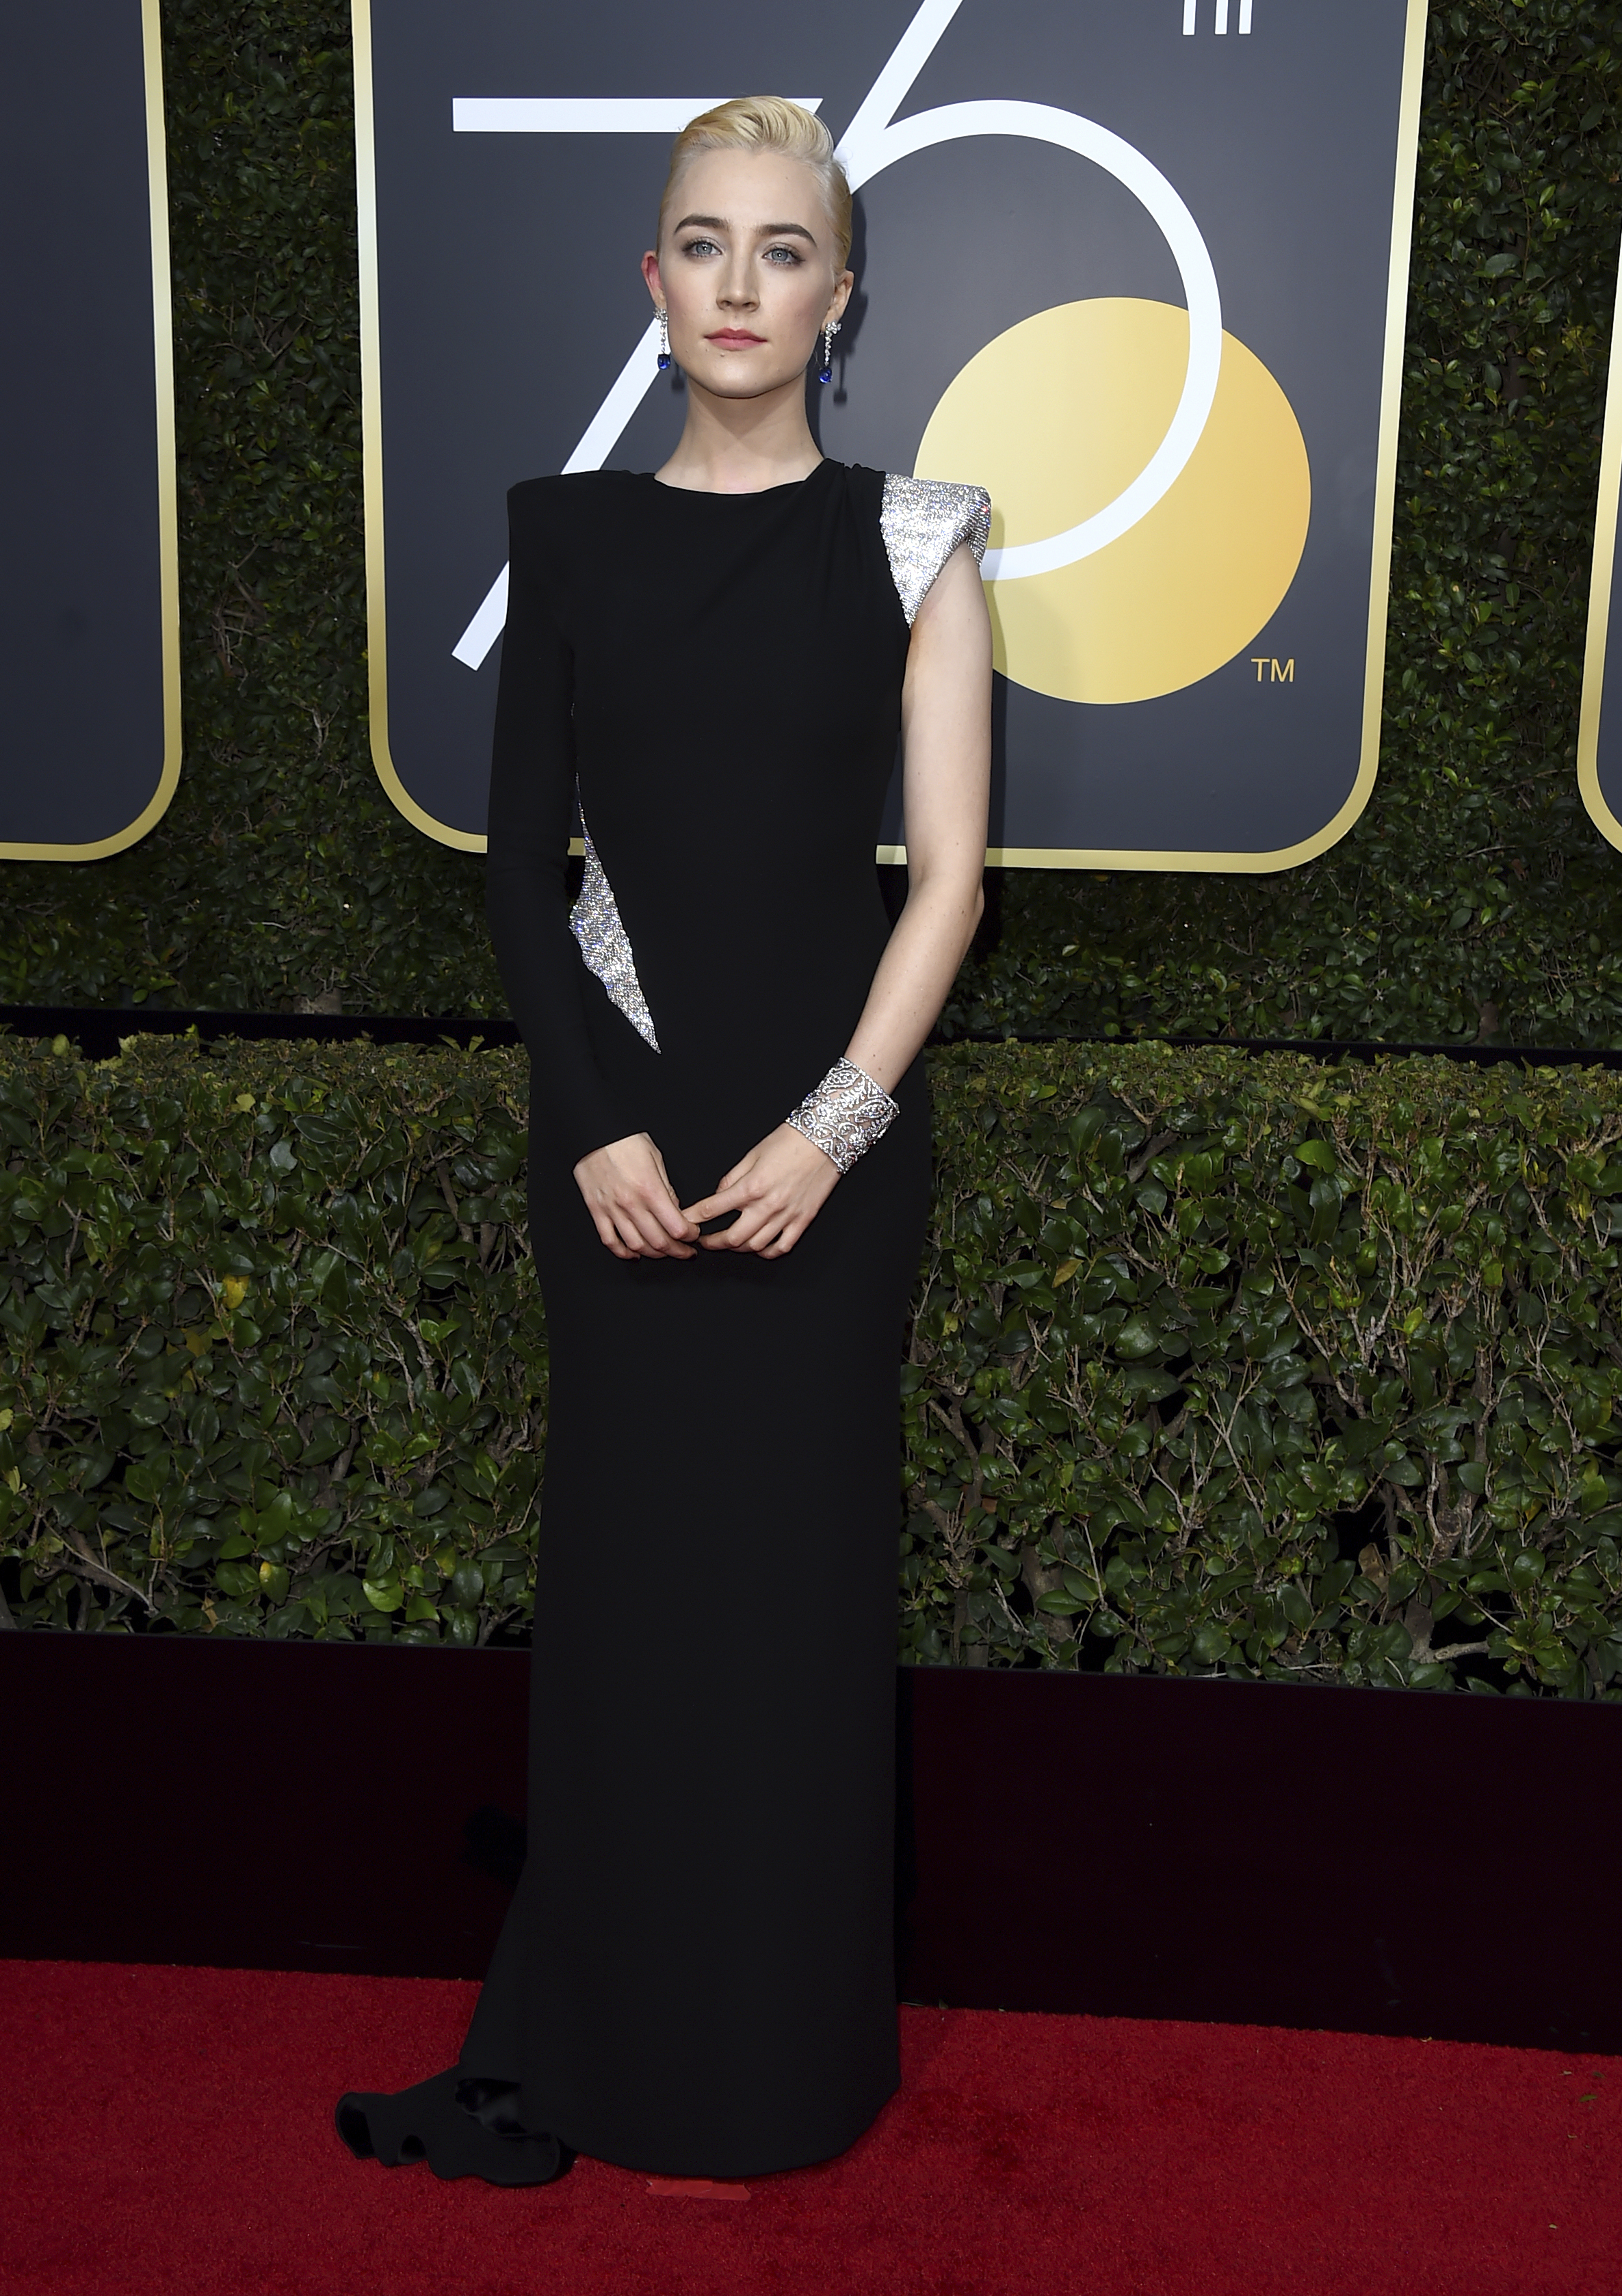 <div class='meta'><div class='origin-logo' data-origin='AP'></div><span class='caption-text' data-credit='Jordan Strauss/Invision/AP'>Saoirse Ronan arrives at the 75th annual Golden Globe Awards at the Beverly Hilton Hotel on Sunday, Jan. 7, 2018, in Beverly Hills, Calif.</span></div>